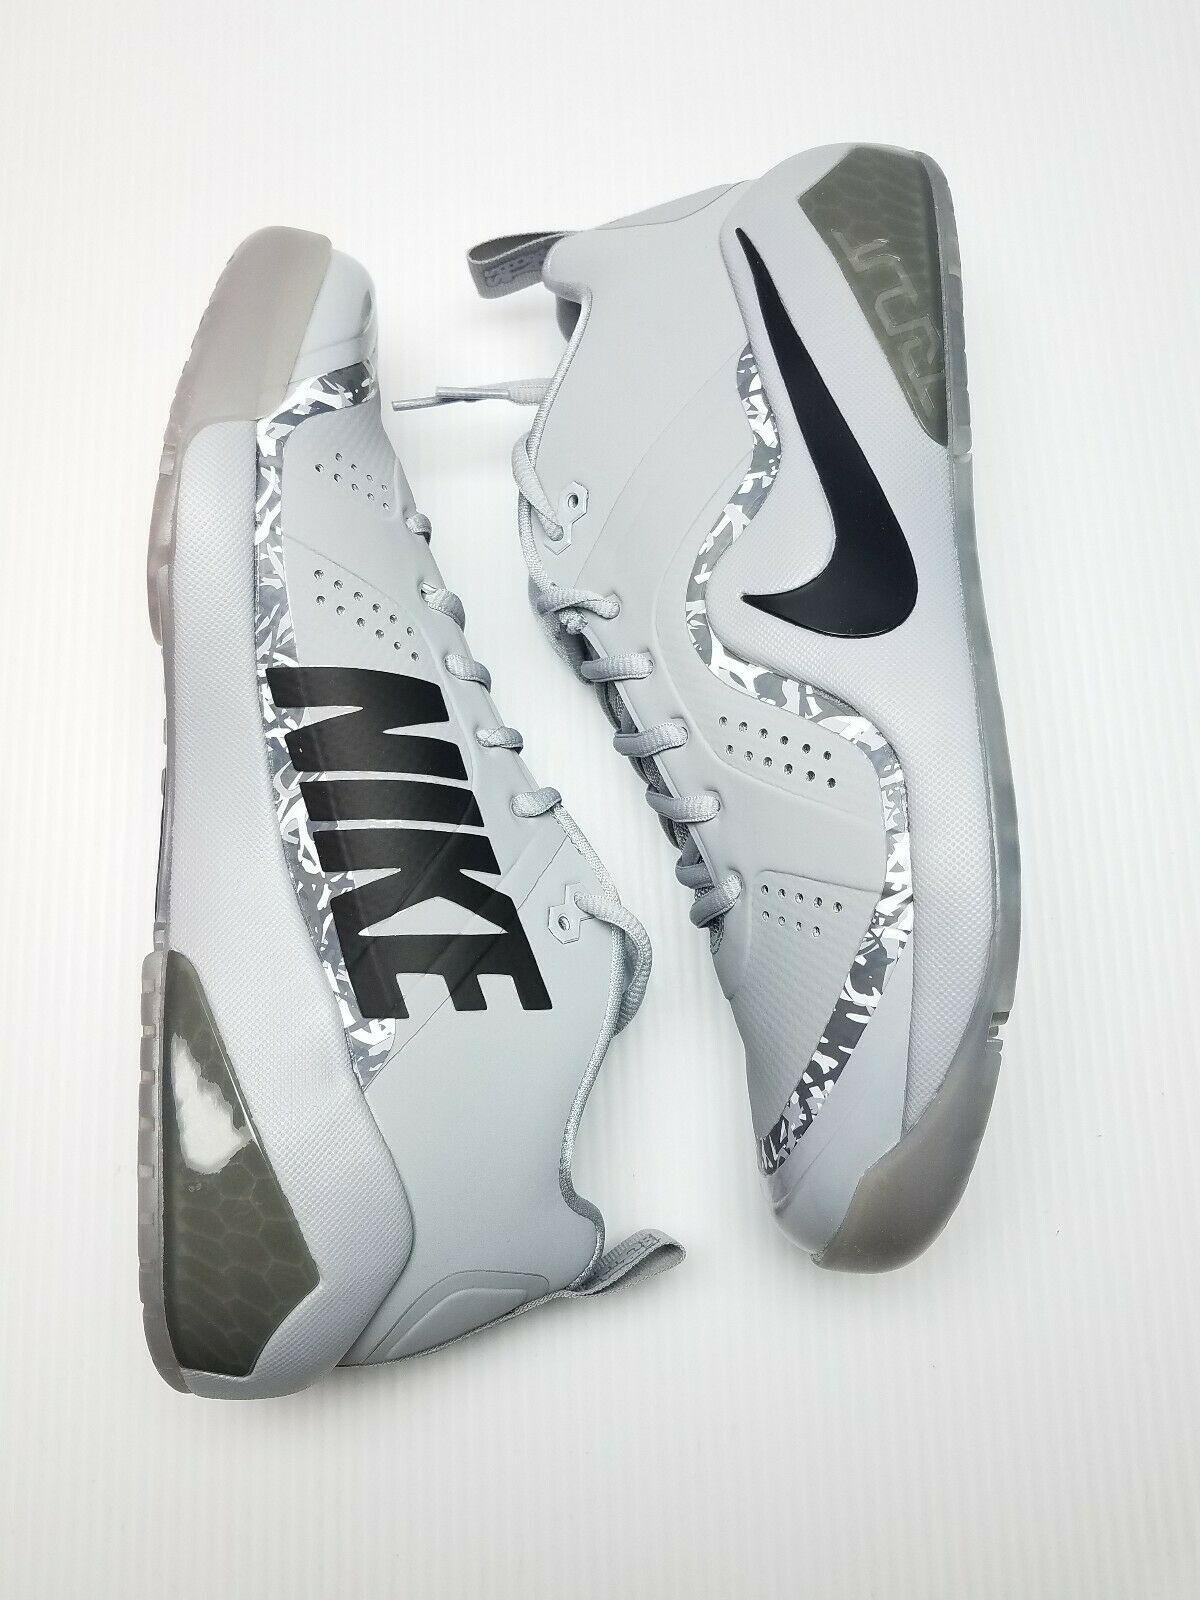 New Nike Force Zoom Trout 4 Turf Baseball shoes Mens Mens Mens Size 8.5 Wolf Grey Black 28d9c4